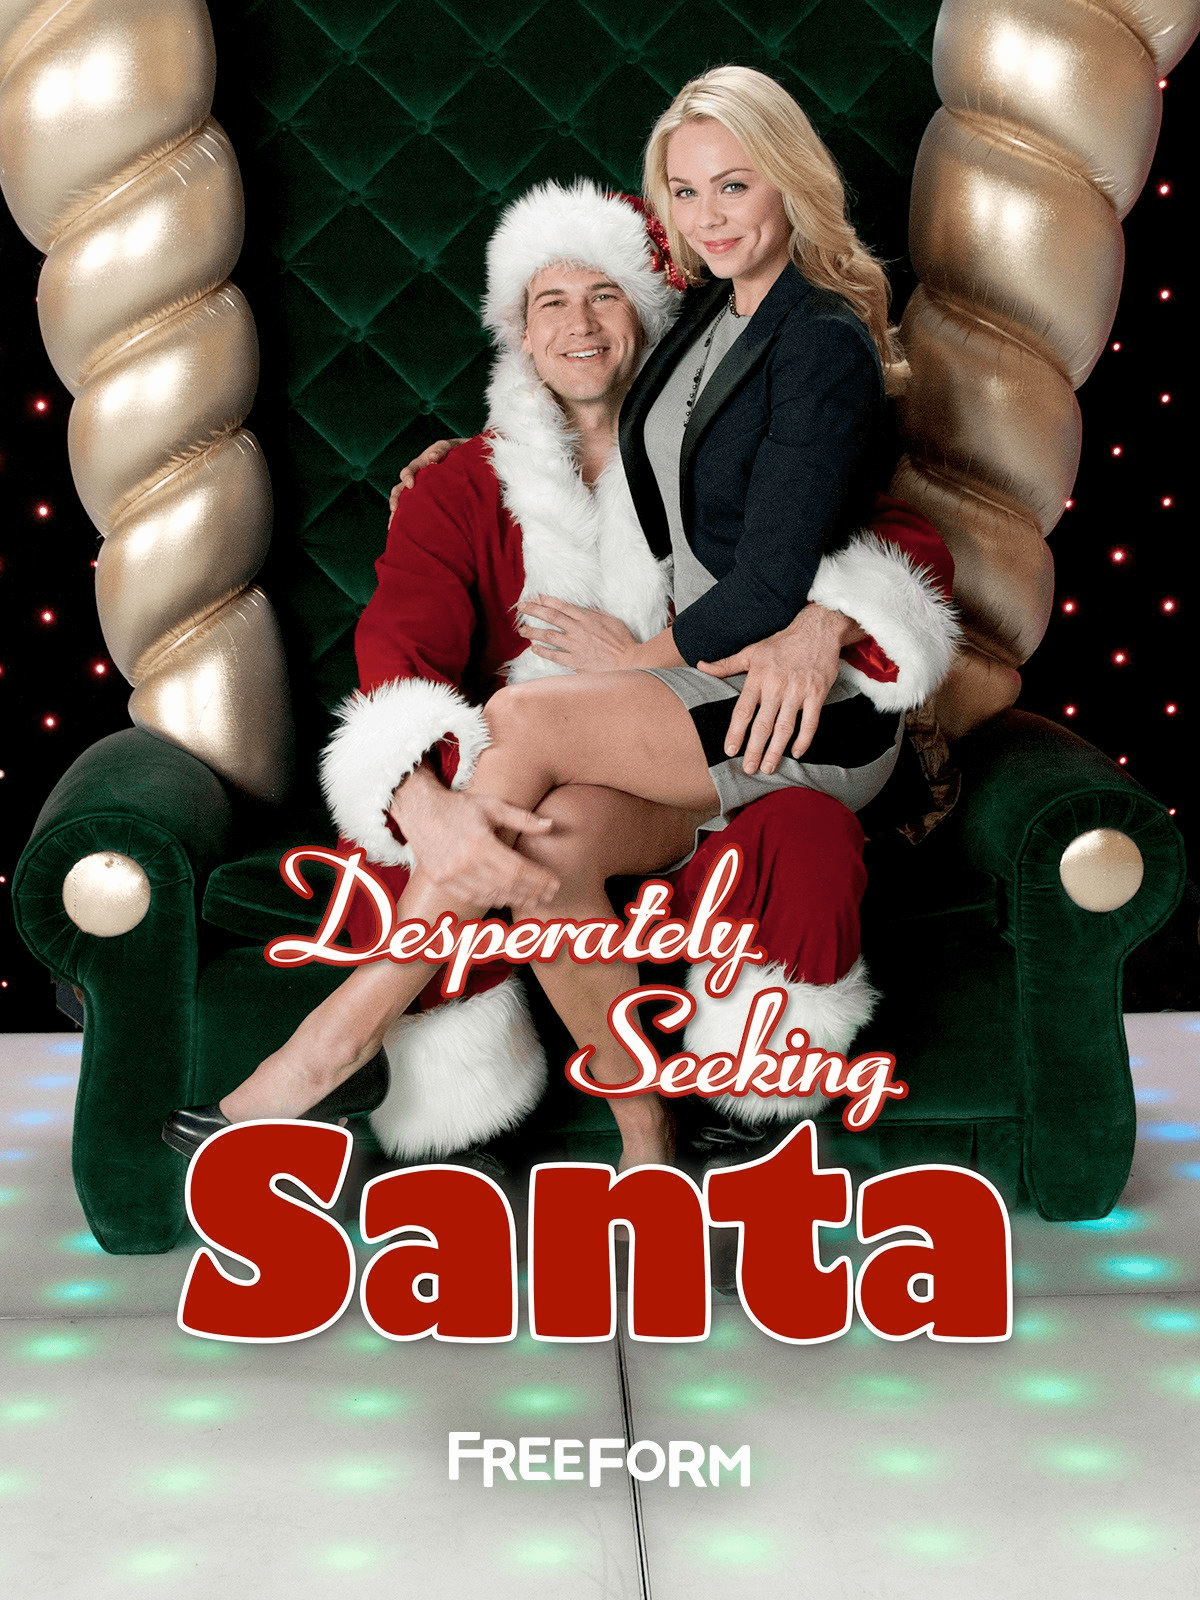 Desperately Seeking Santa 2011 on DVD